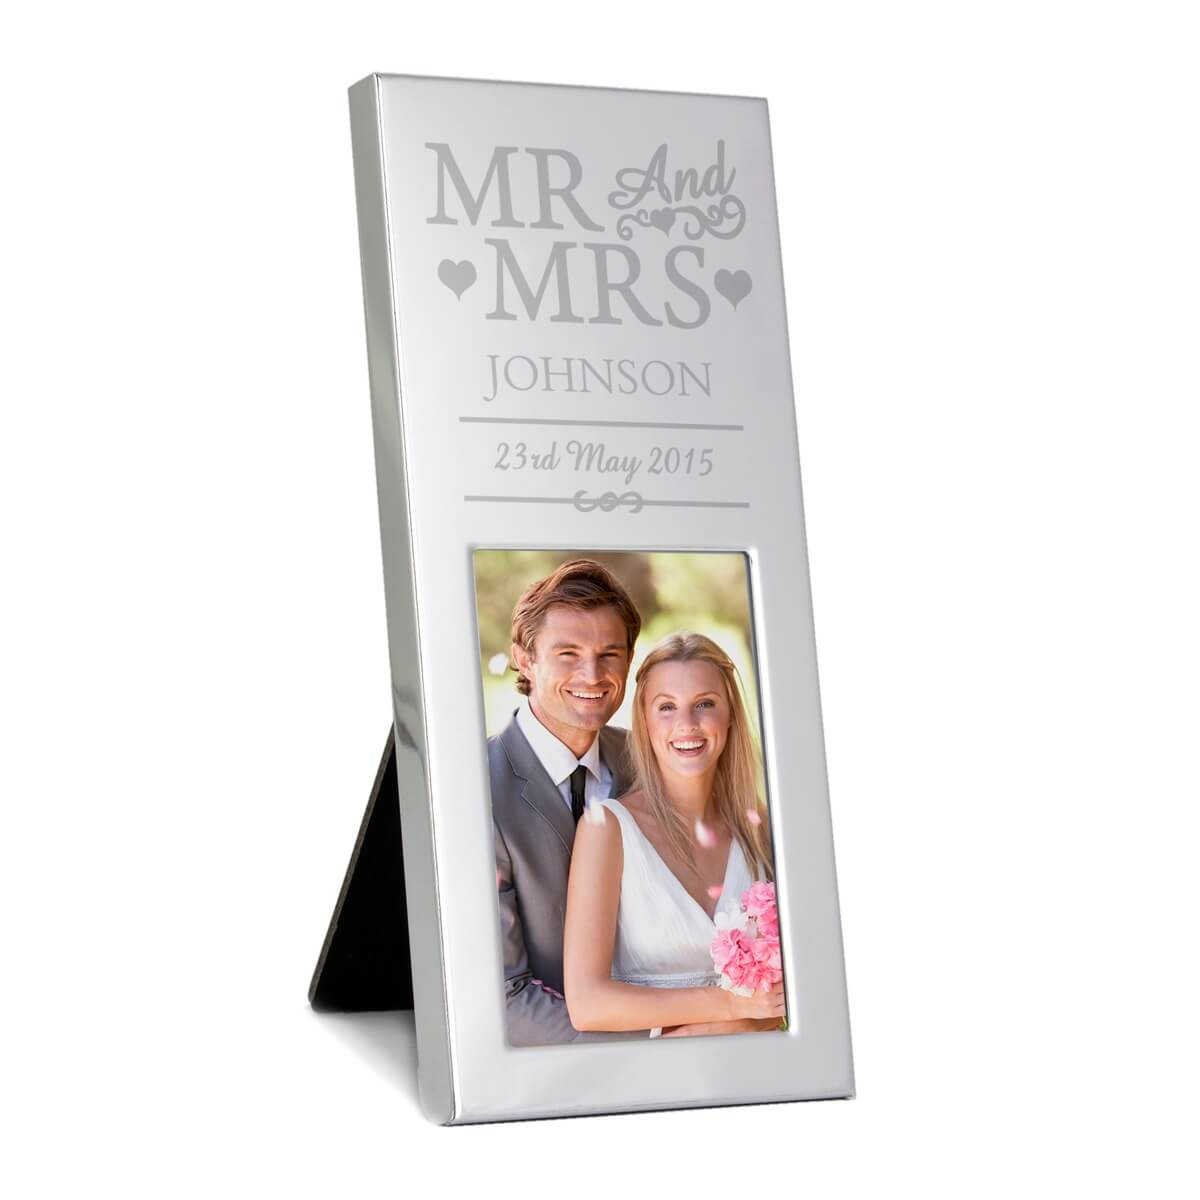 Personalised Small Mr & Mrs 3×2 Silver Photo Frame